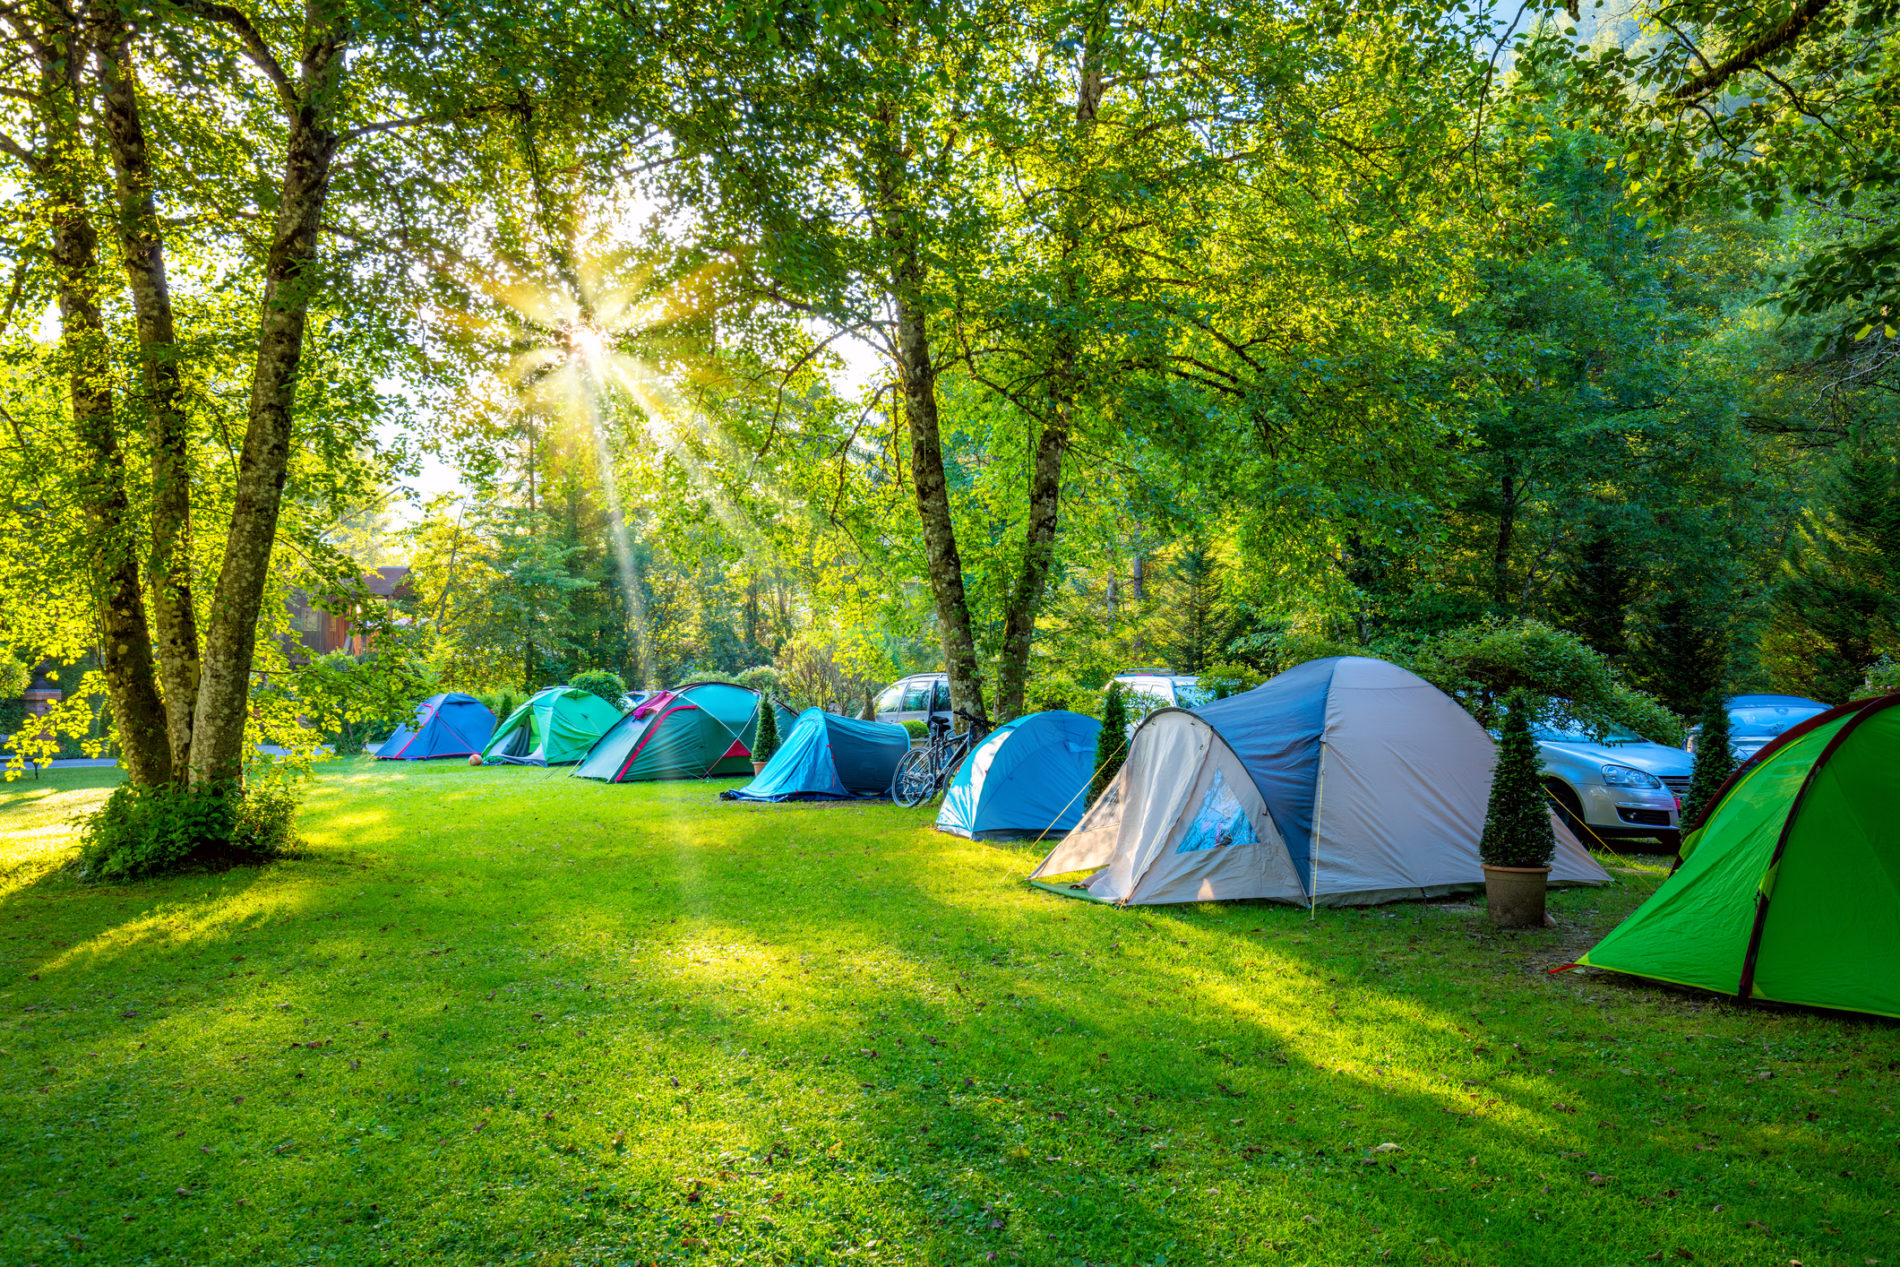 Tents Camping area at early sunny morning, beautiful natural place with big trees and green grass